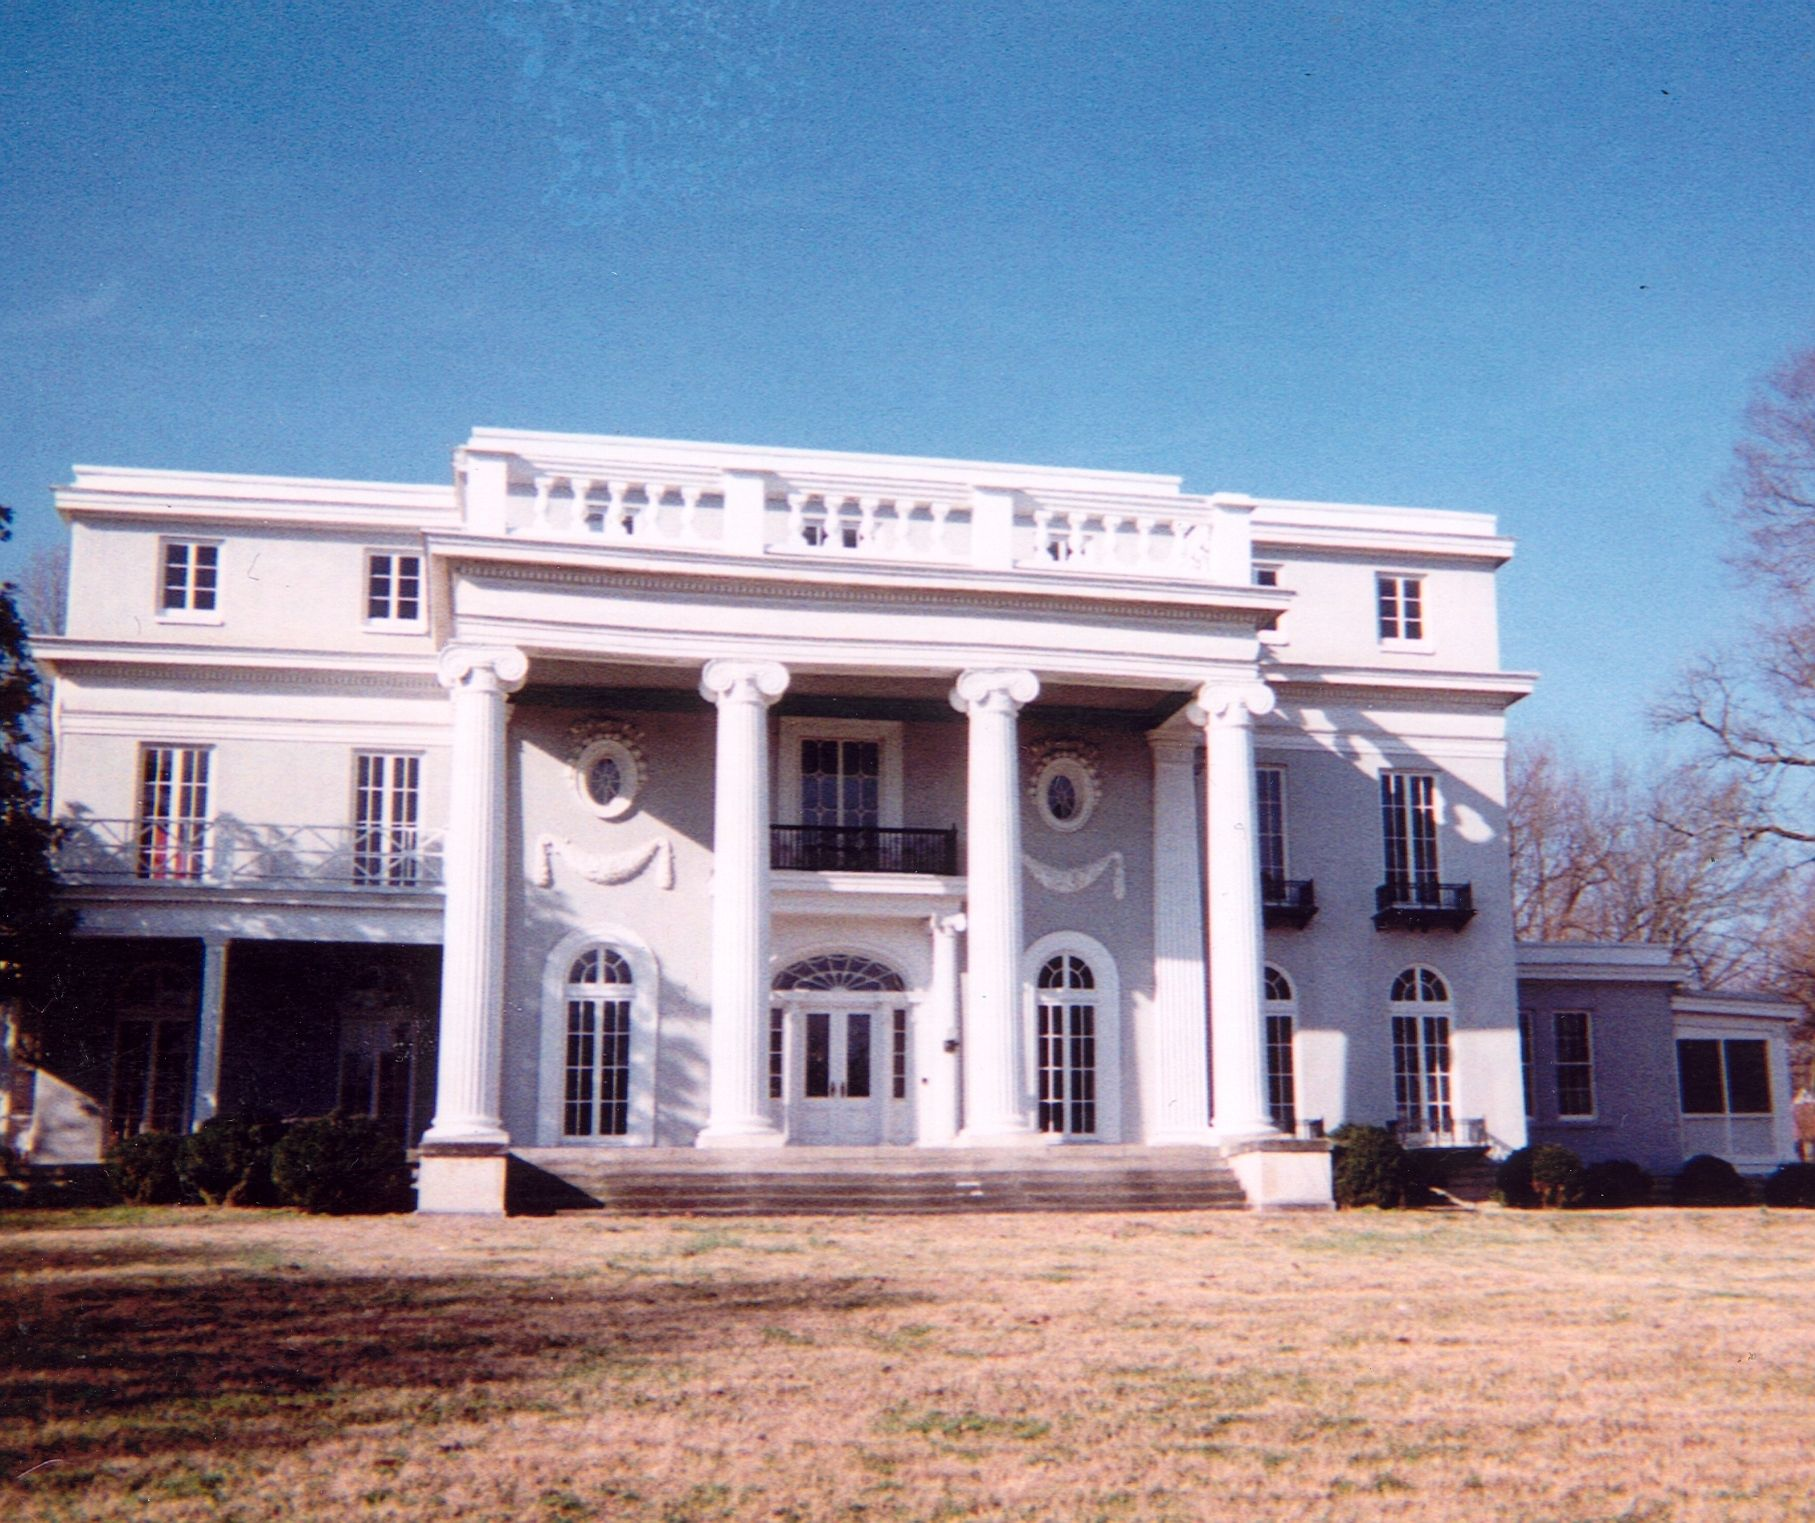 Pin on 19th Century Plantation Architecture